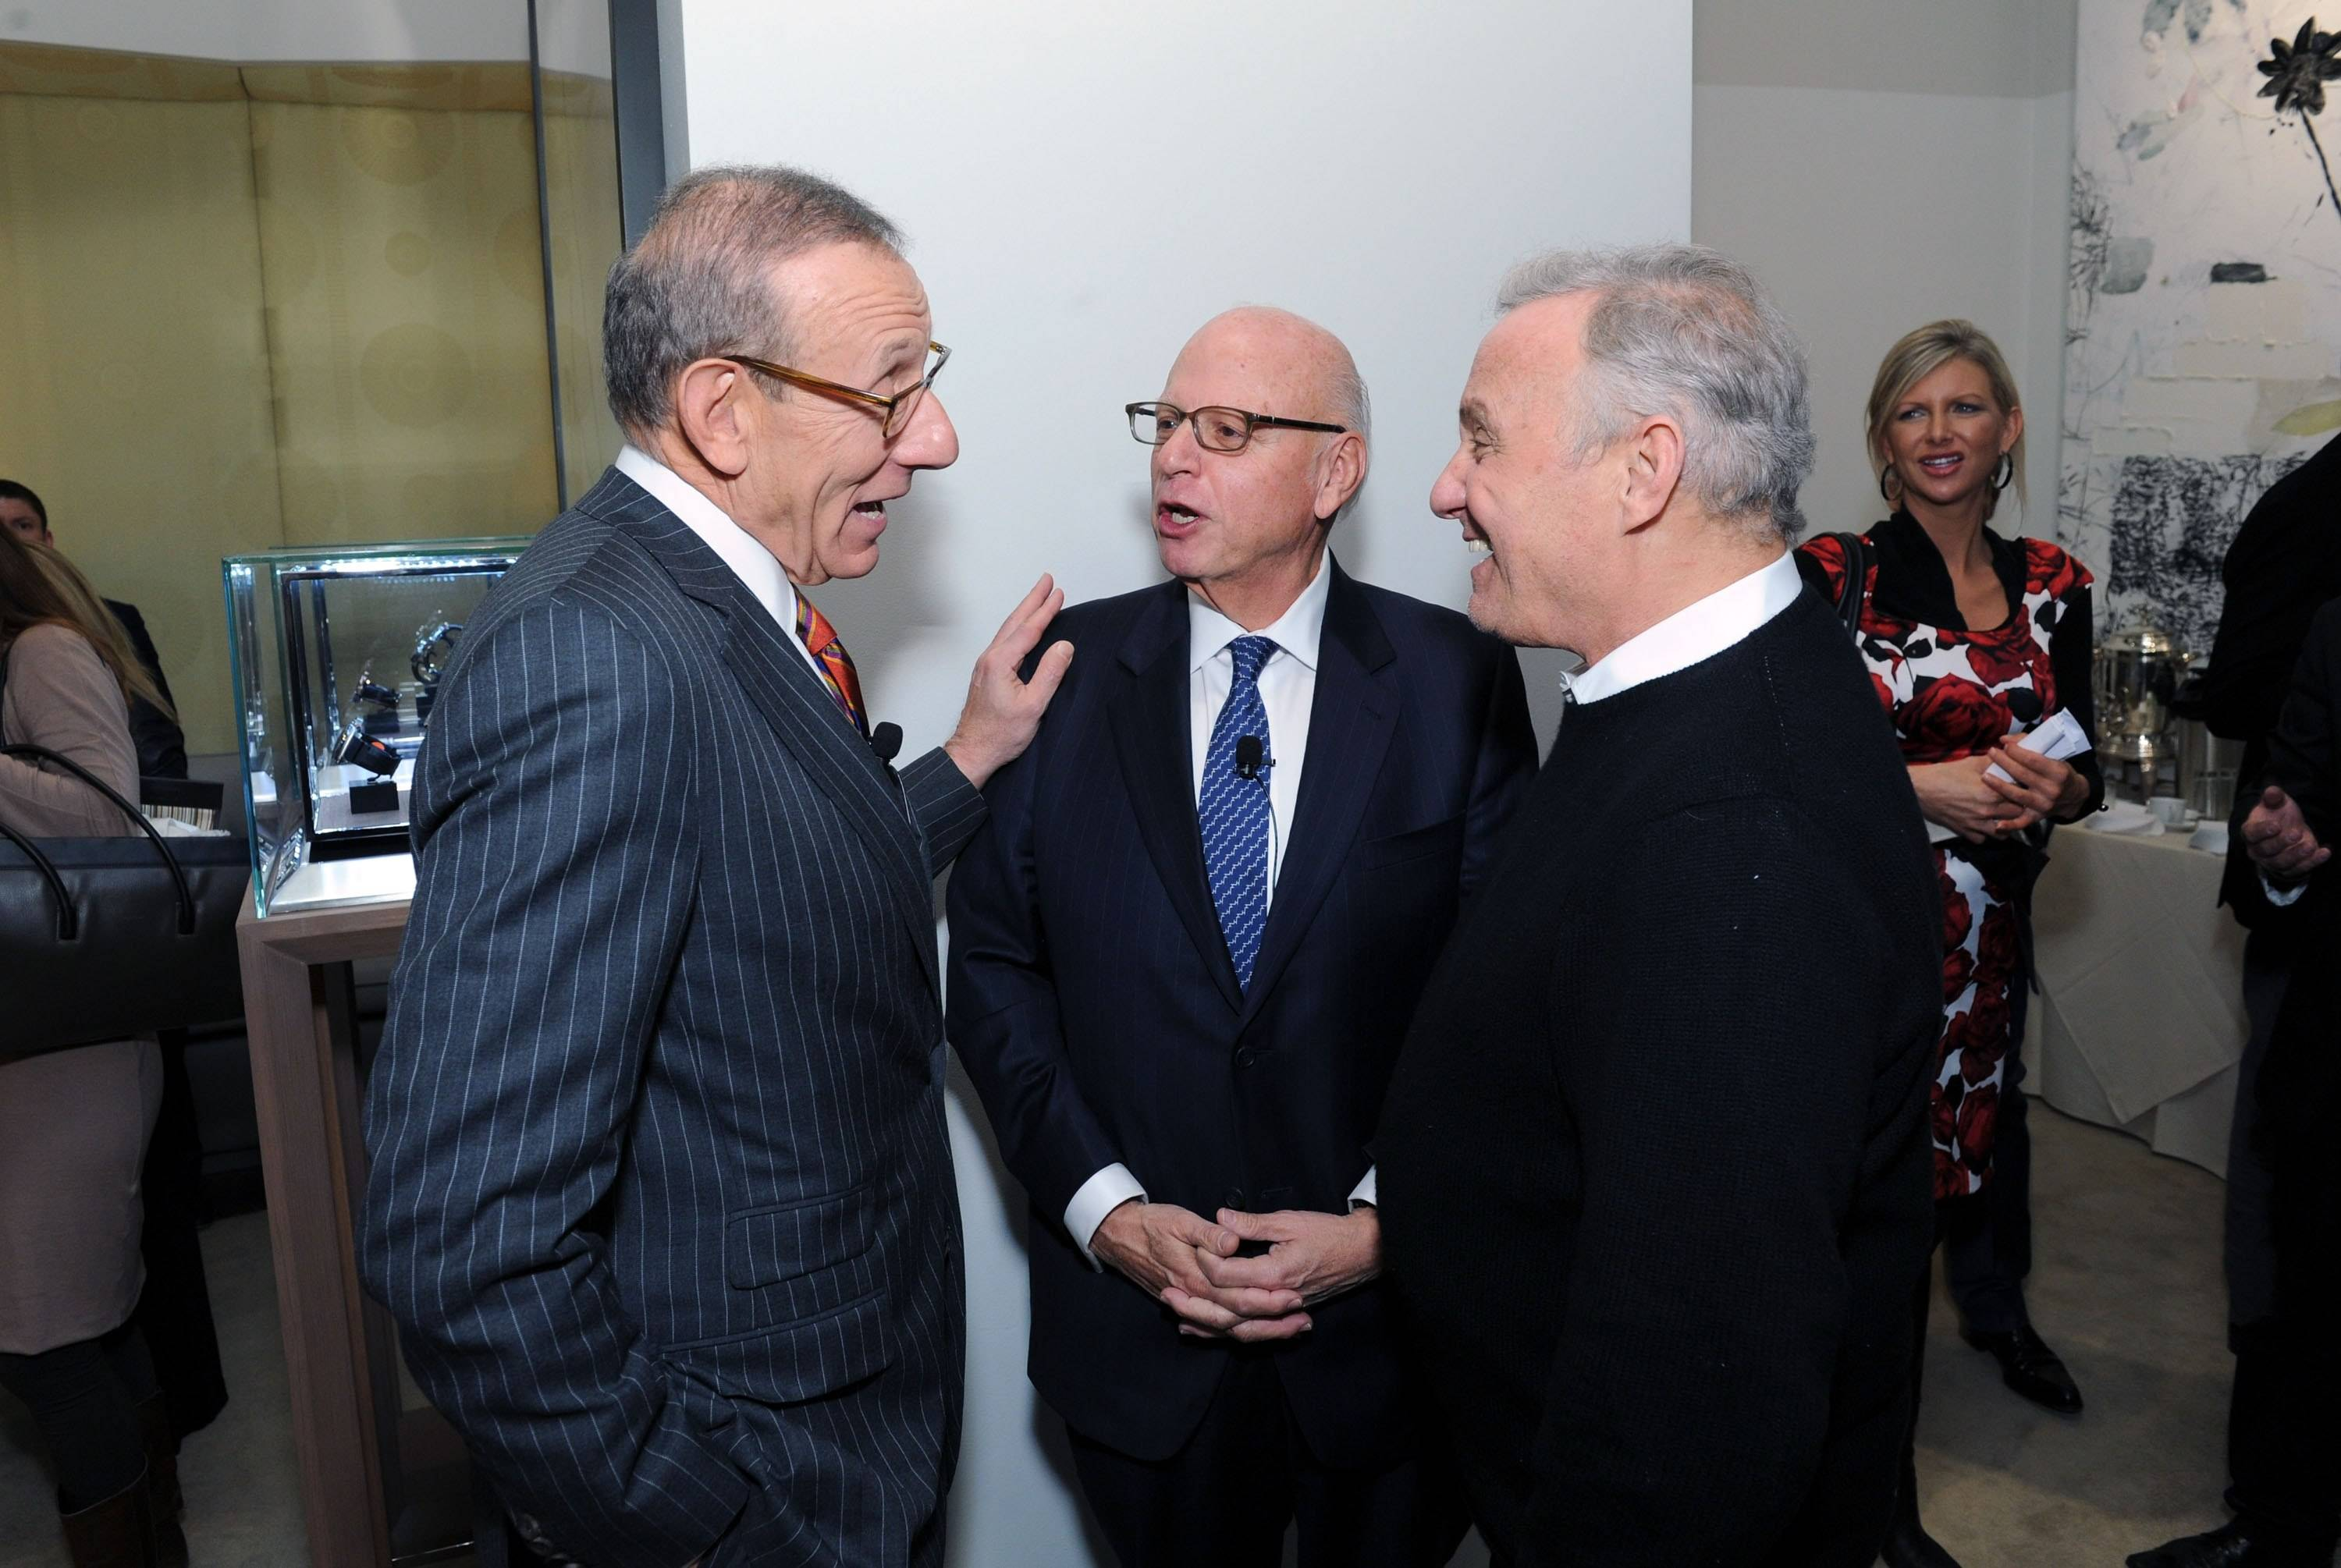 Stephen Ross, Howard Lorber and Ian Schrager